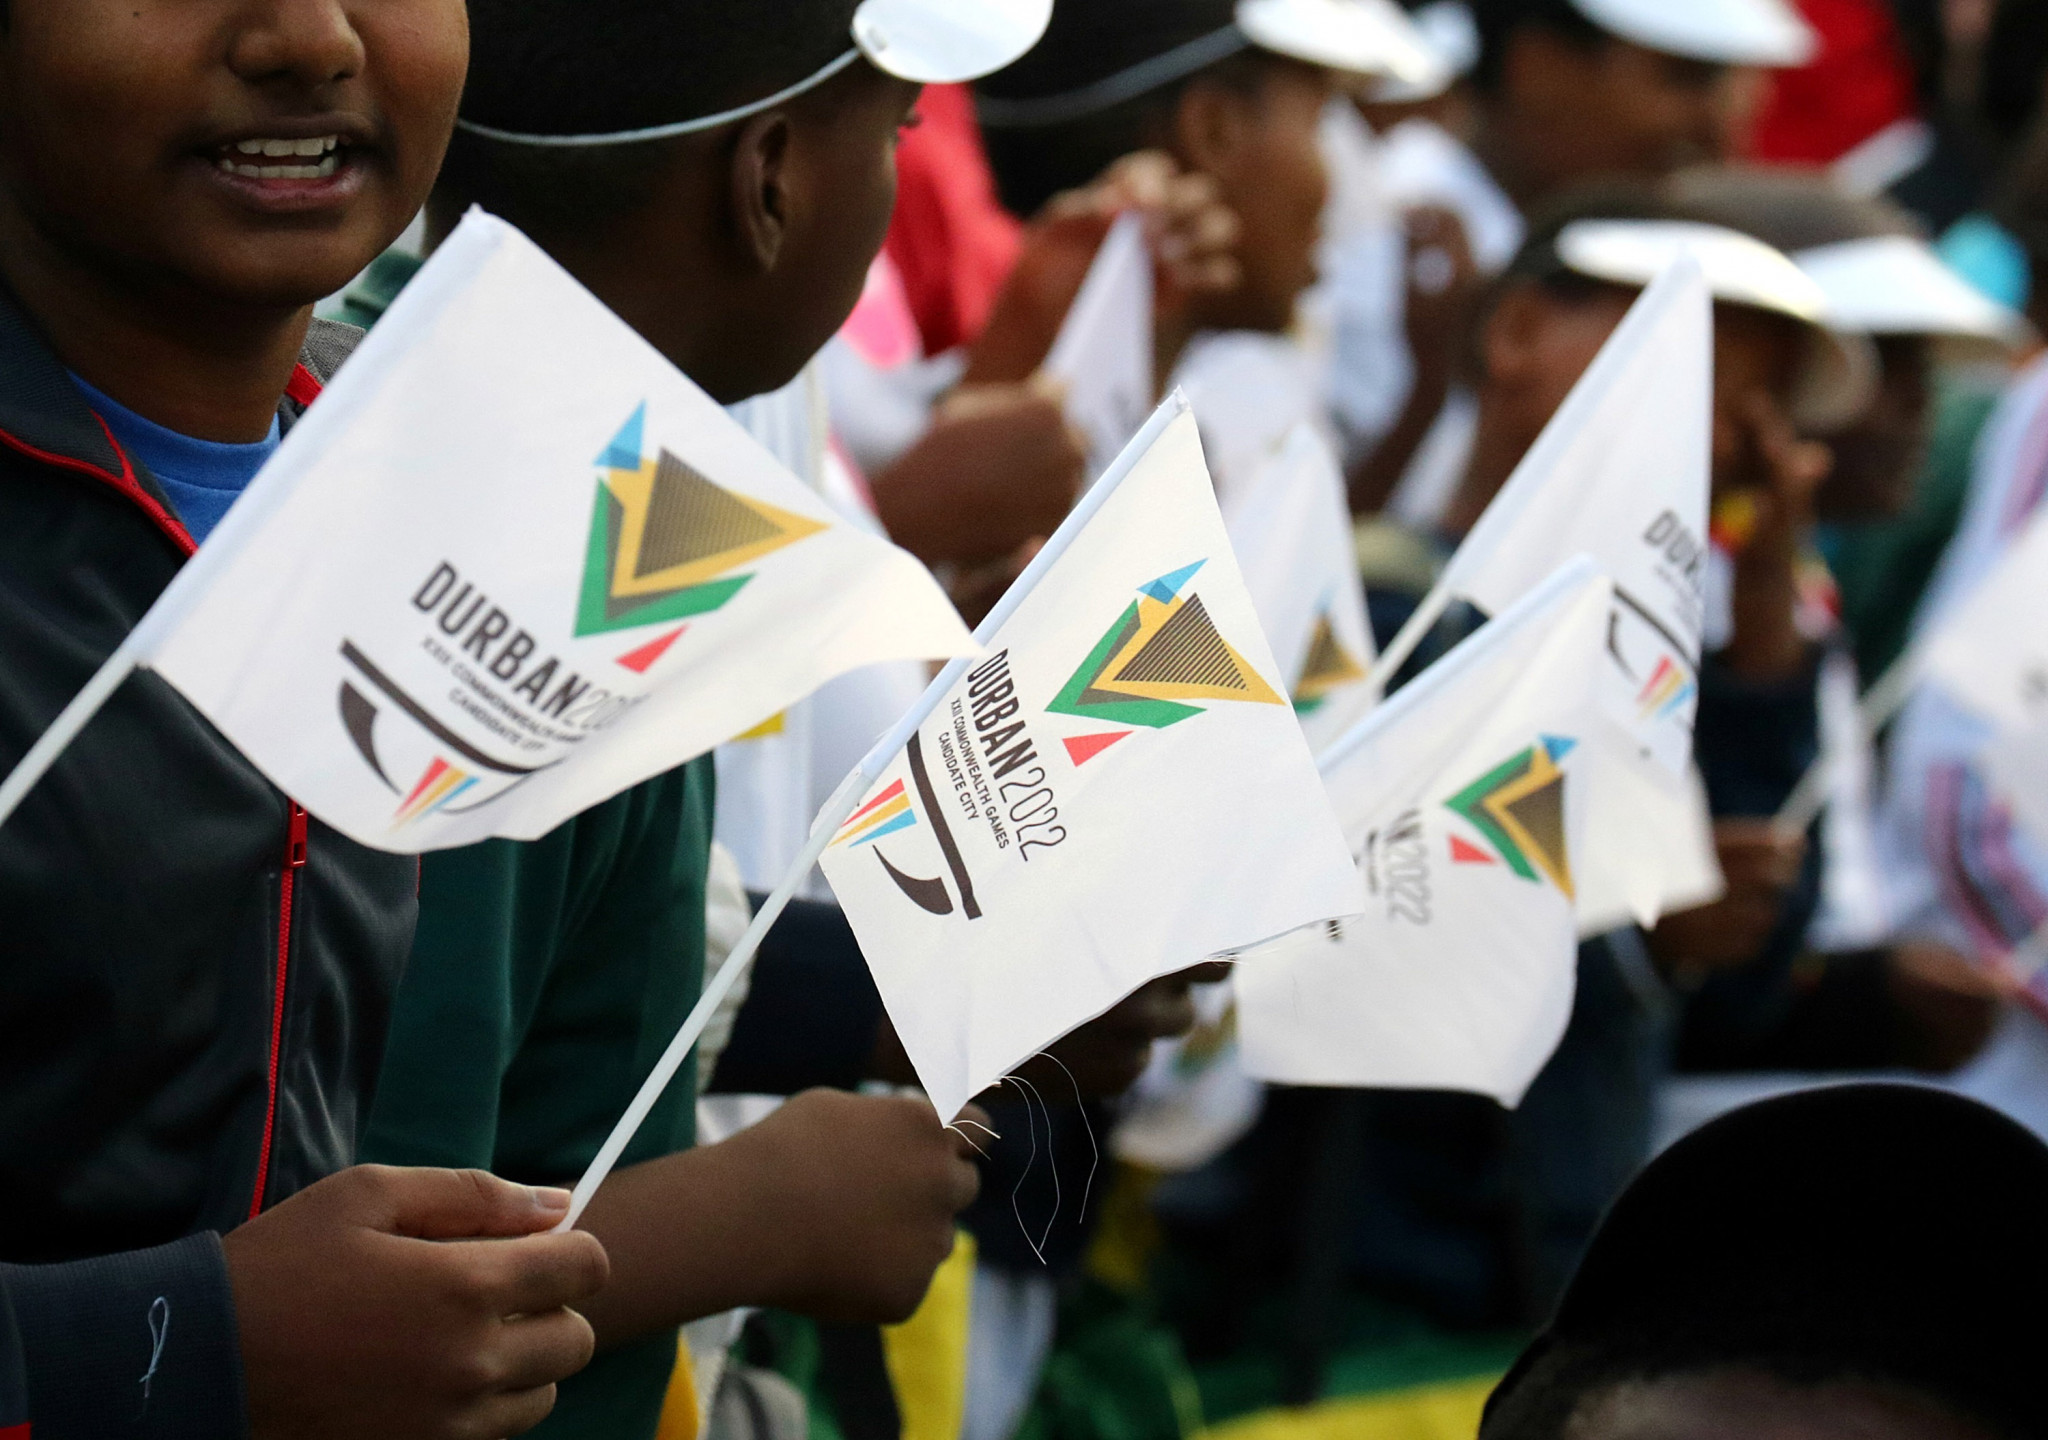 Durban was stripped of the 2022 Commonwealth Games because of the lack of financial guarantees ©Getty Images